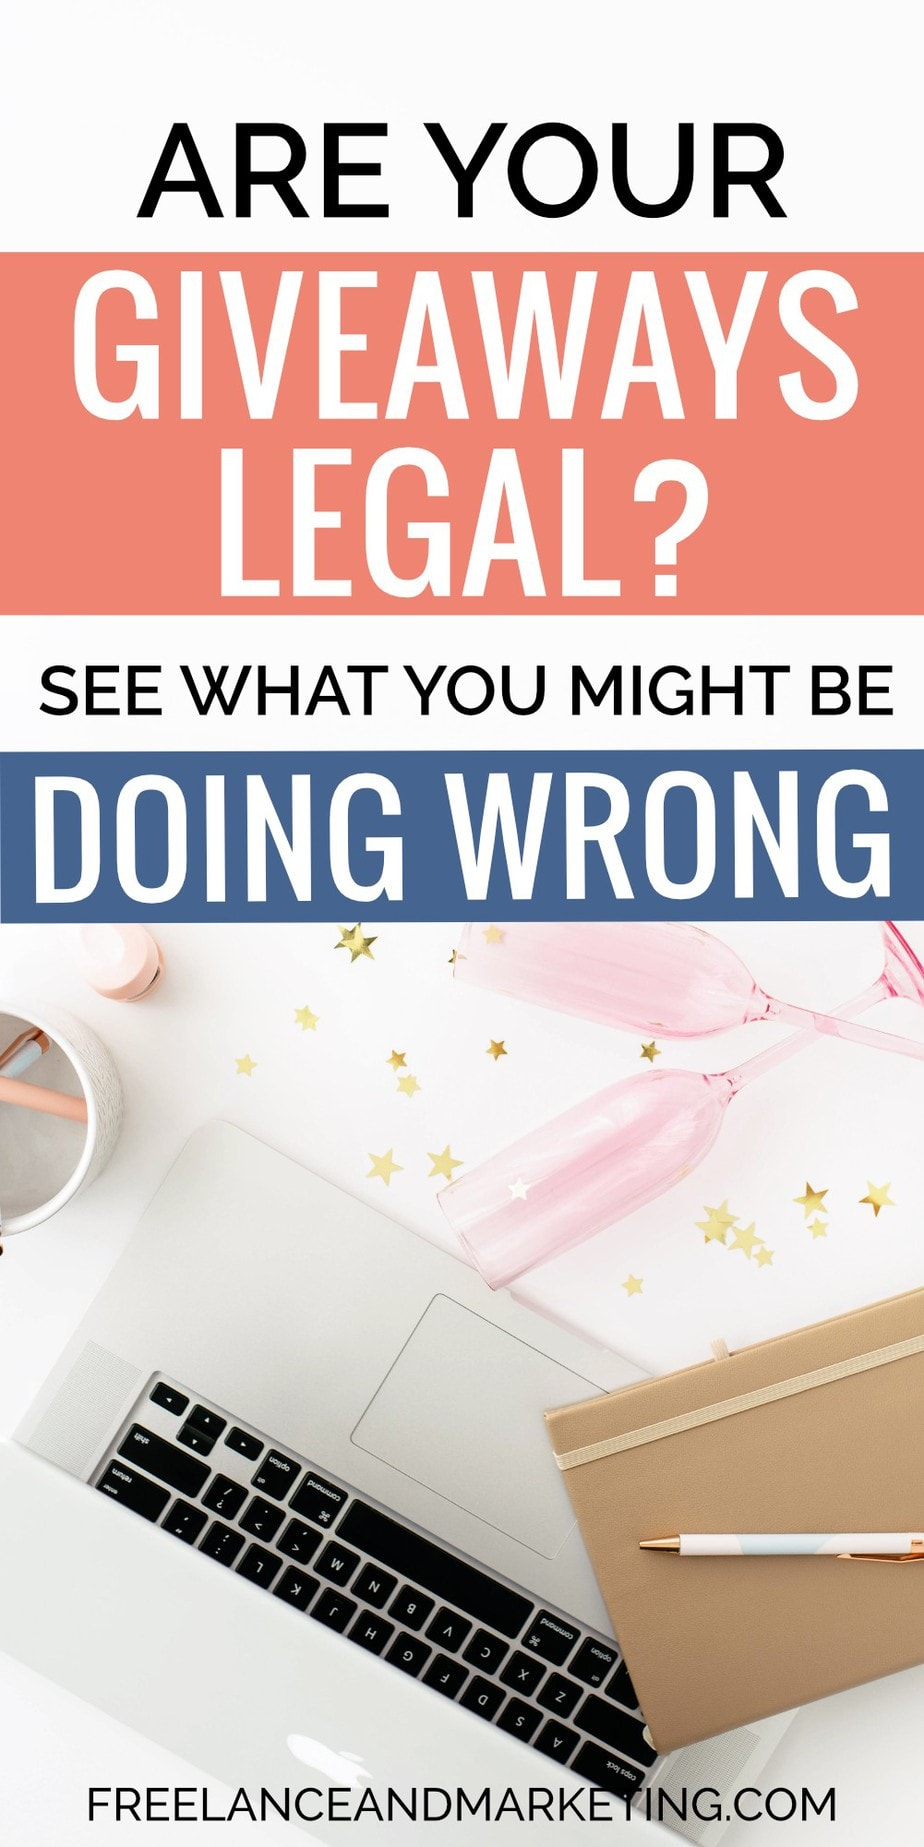 Find out what are the rules for doing legal giveaways and contests, sweepstakes for Facebook, Instagram and your website overall. Legal giveaway rules and regulations for bloggers, entrepreneurs, and small businesses. Learn how to conduct giveaways to grow your social media accounts and your email lists. #legalgiveaway #giveawaysandcontests #sweepstakerules #legalsweepstakes #blogginggiveaway #facebookgiveaway #instagramgiveaway